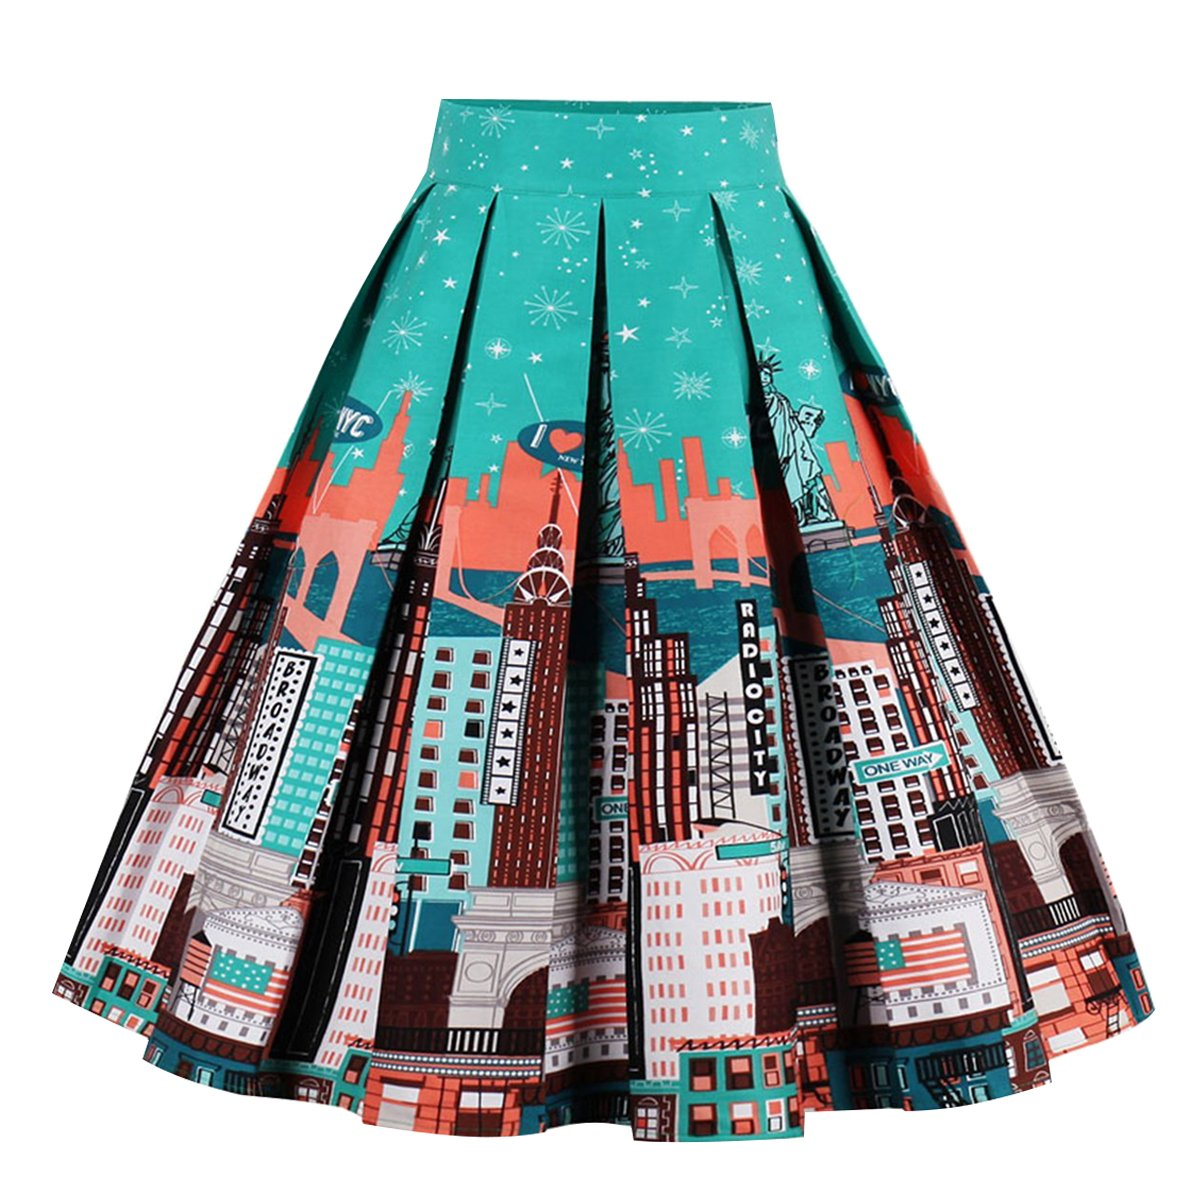 Girstunm Women's Pleated Vintage Skirt Floral Print A-Line Midi Skirts with Pockets Statue of Liberty XL